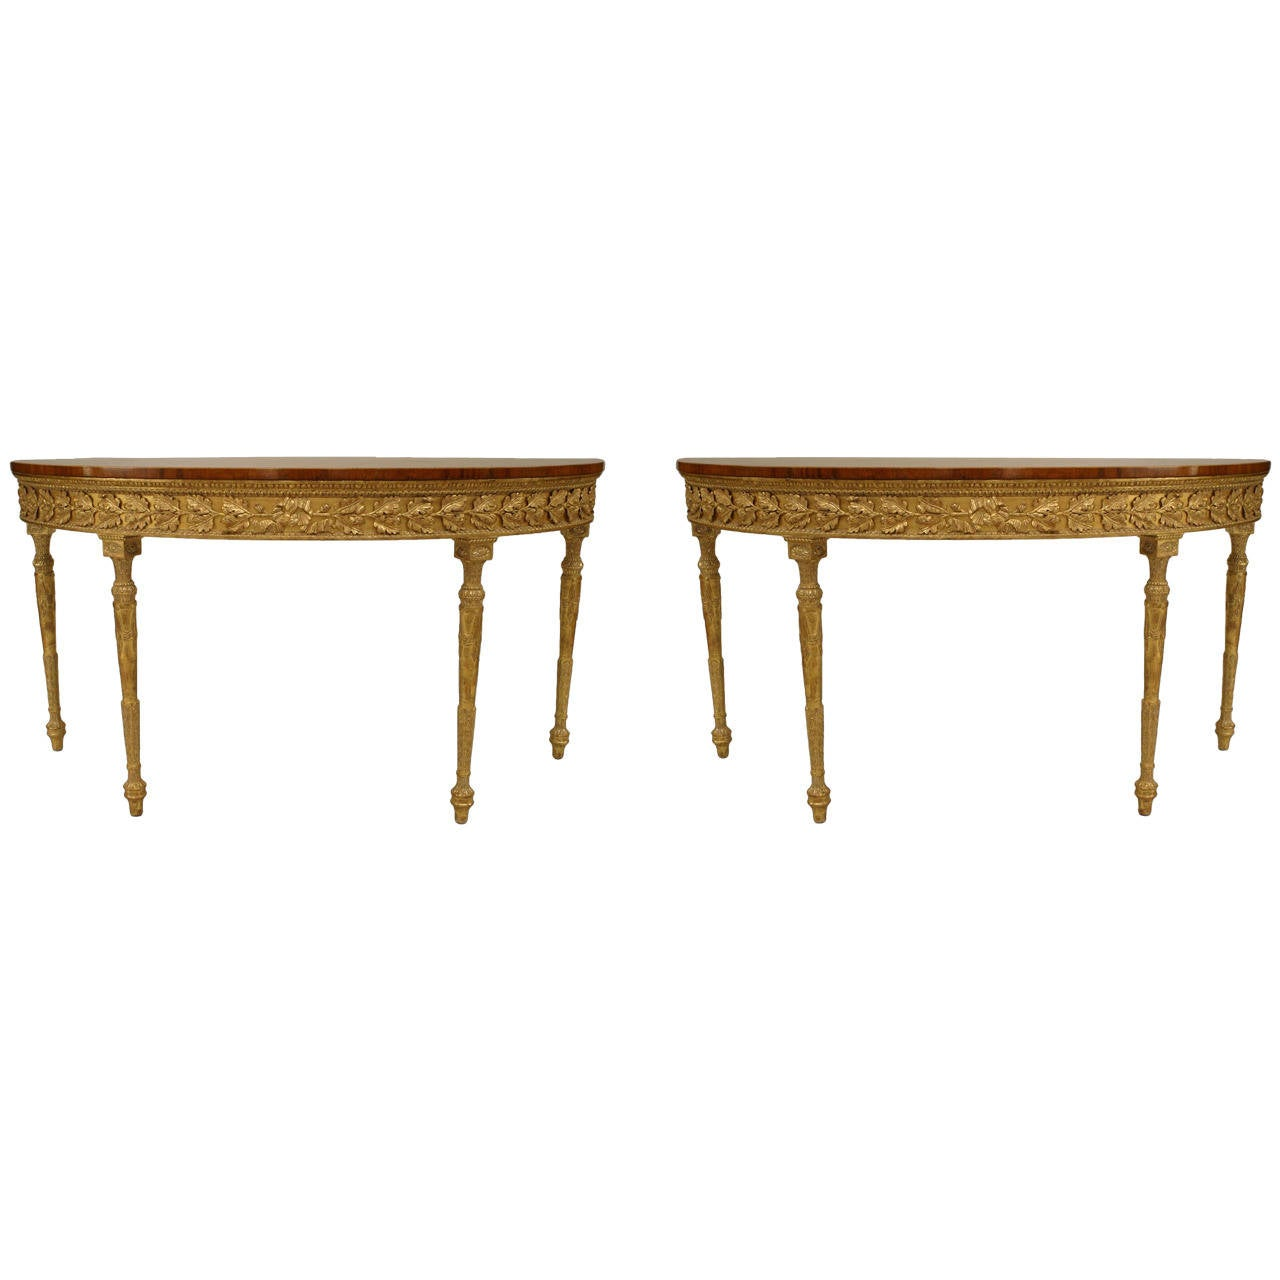 Pair of English Georgian Style Satinwood and Parcel Gilt Demilune Consoles